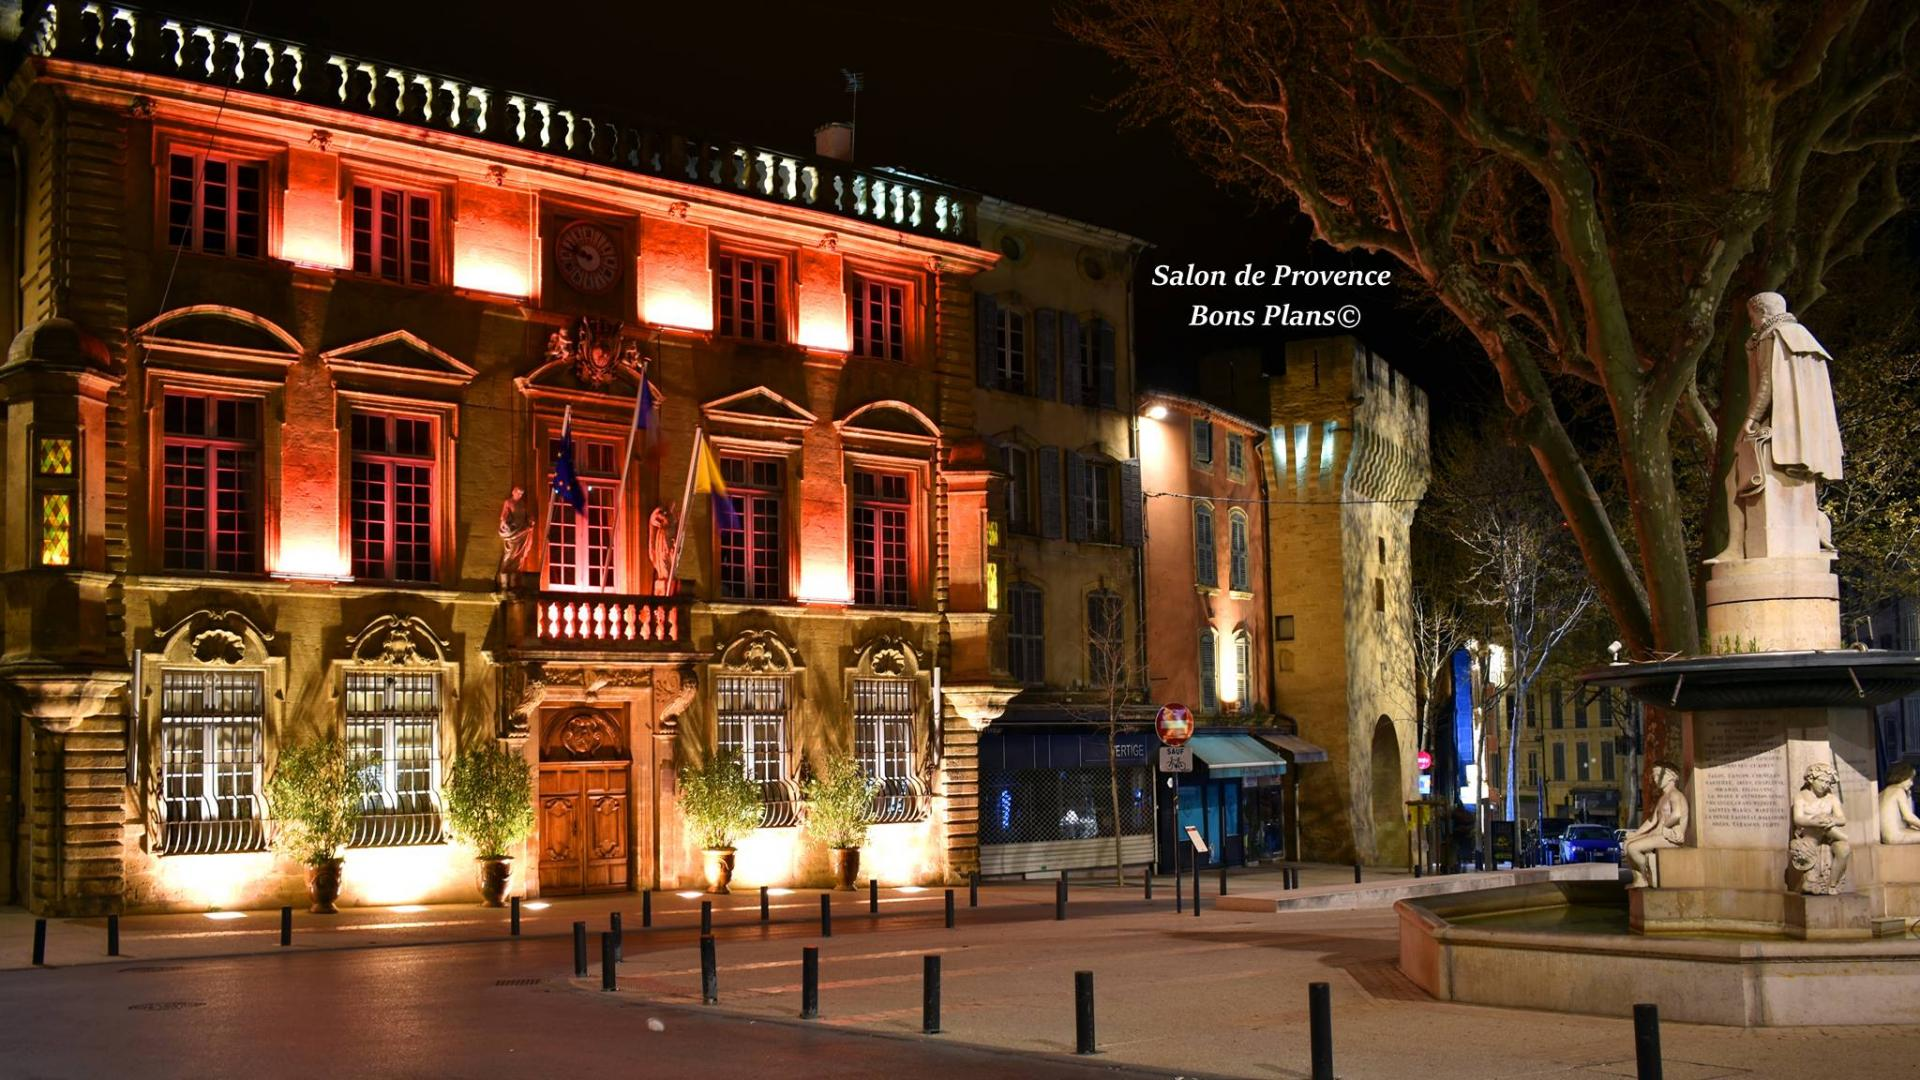 Visites nocturnes de salon de provence - Journee des associations salon de provence ...